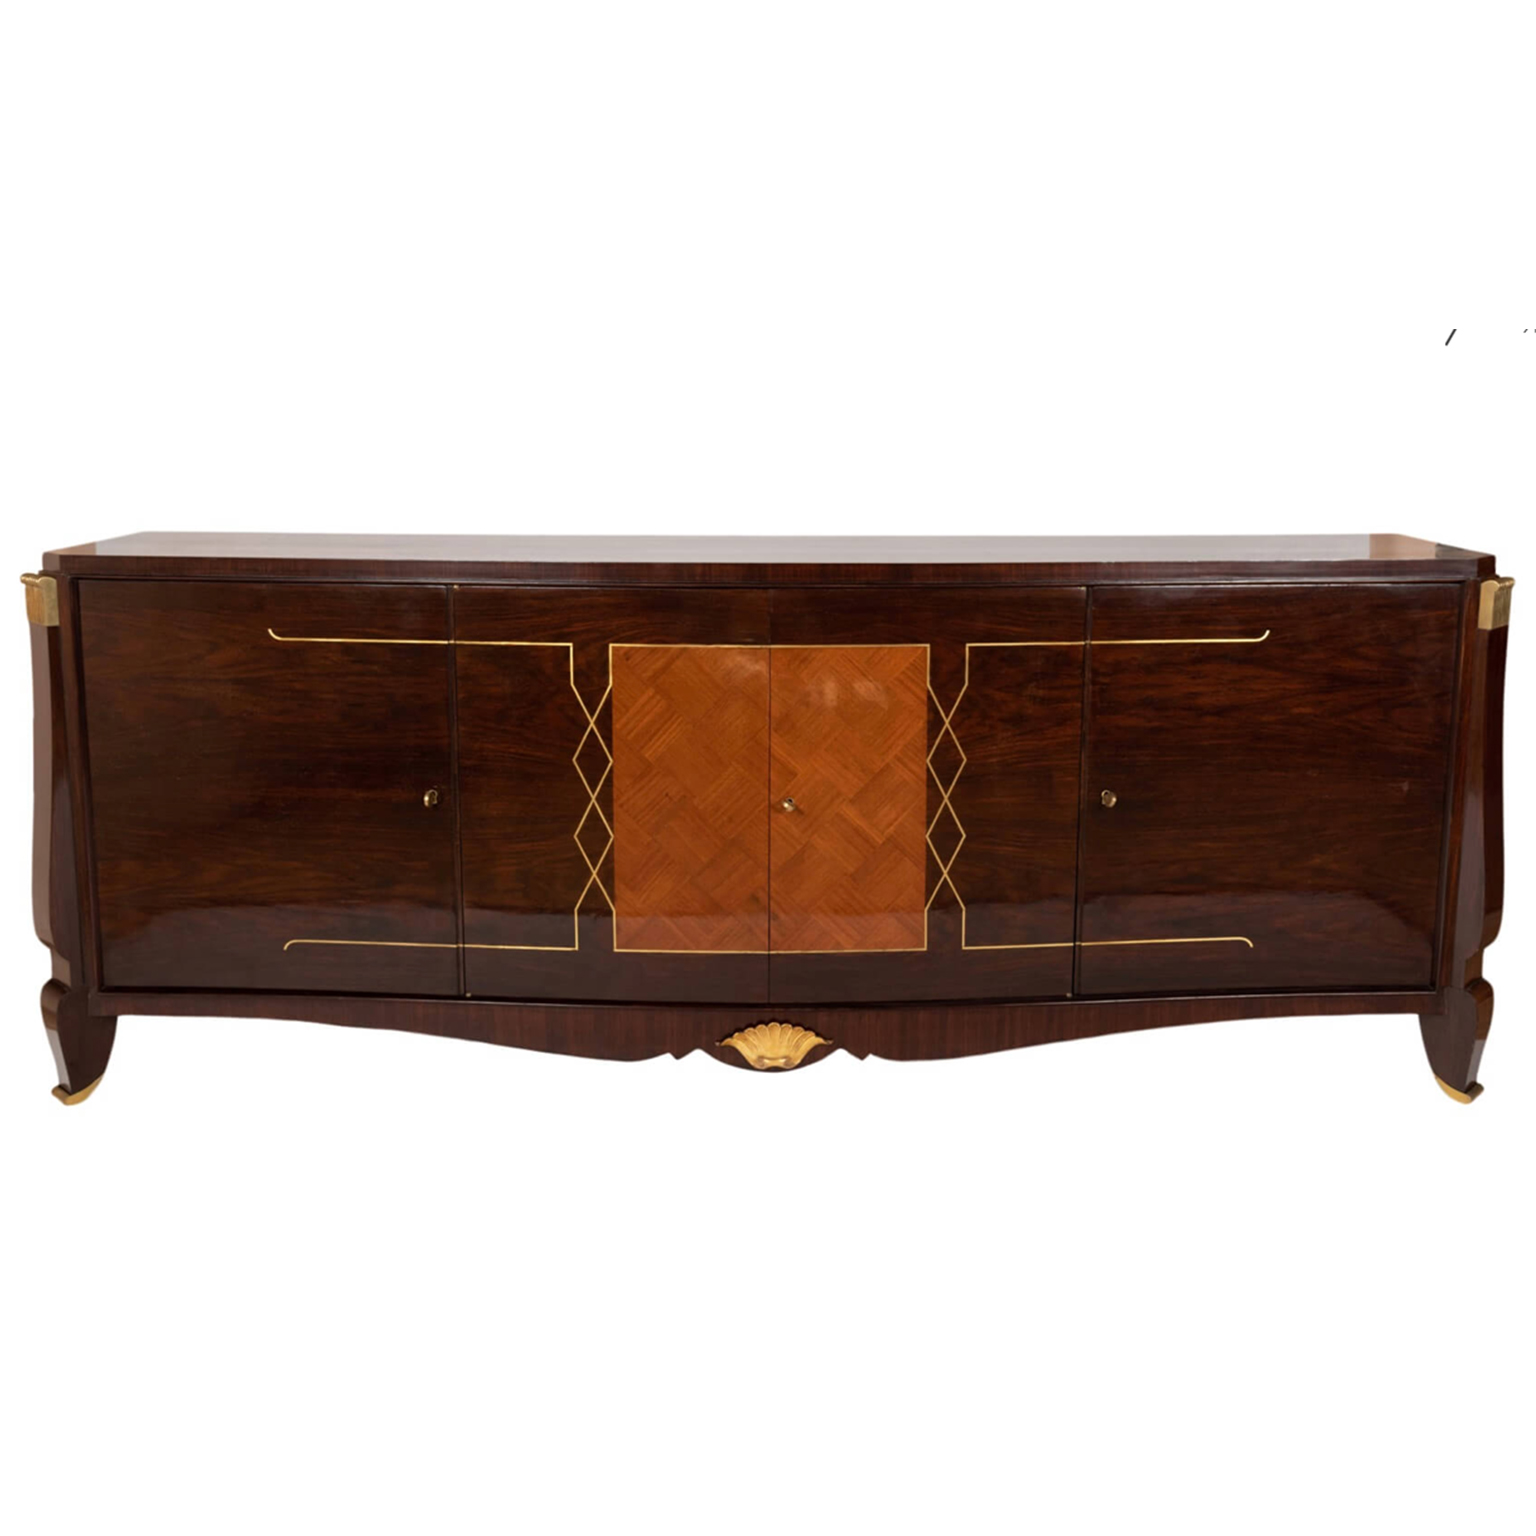 Art Deco sideboard rosewood wood with brass details